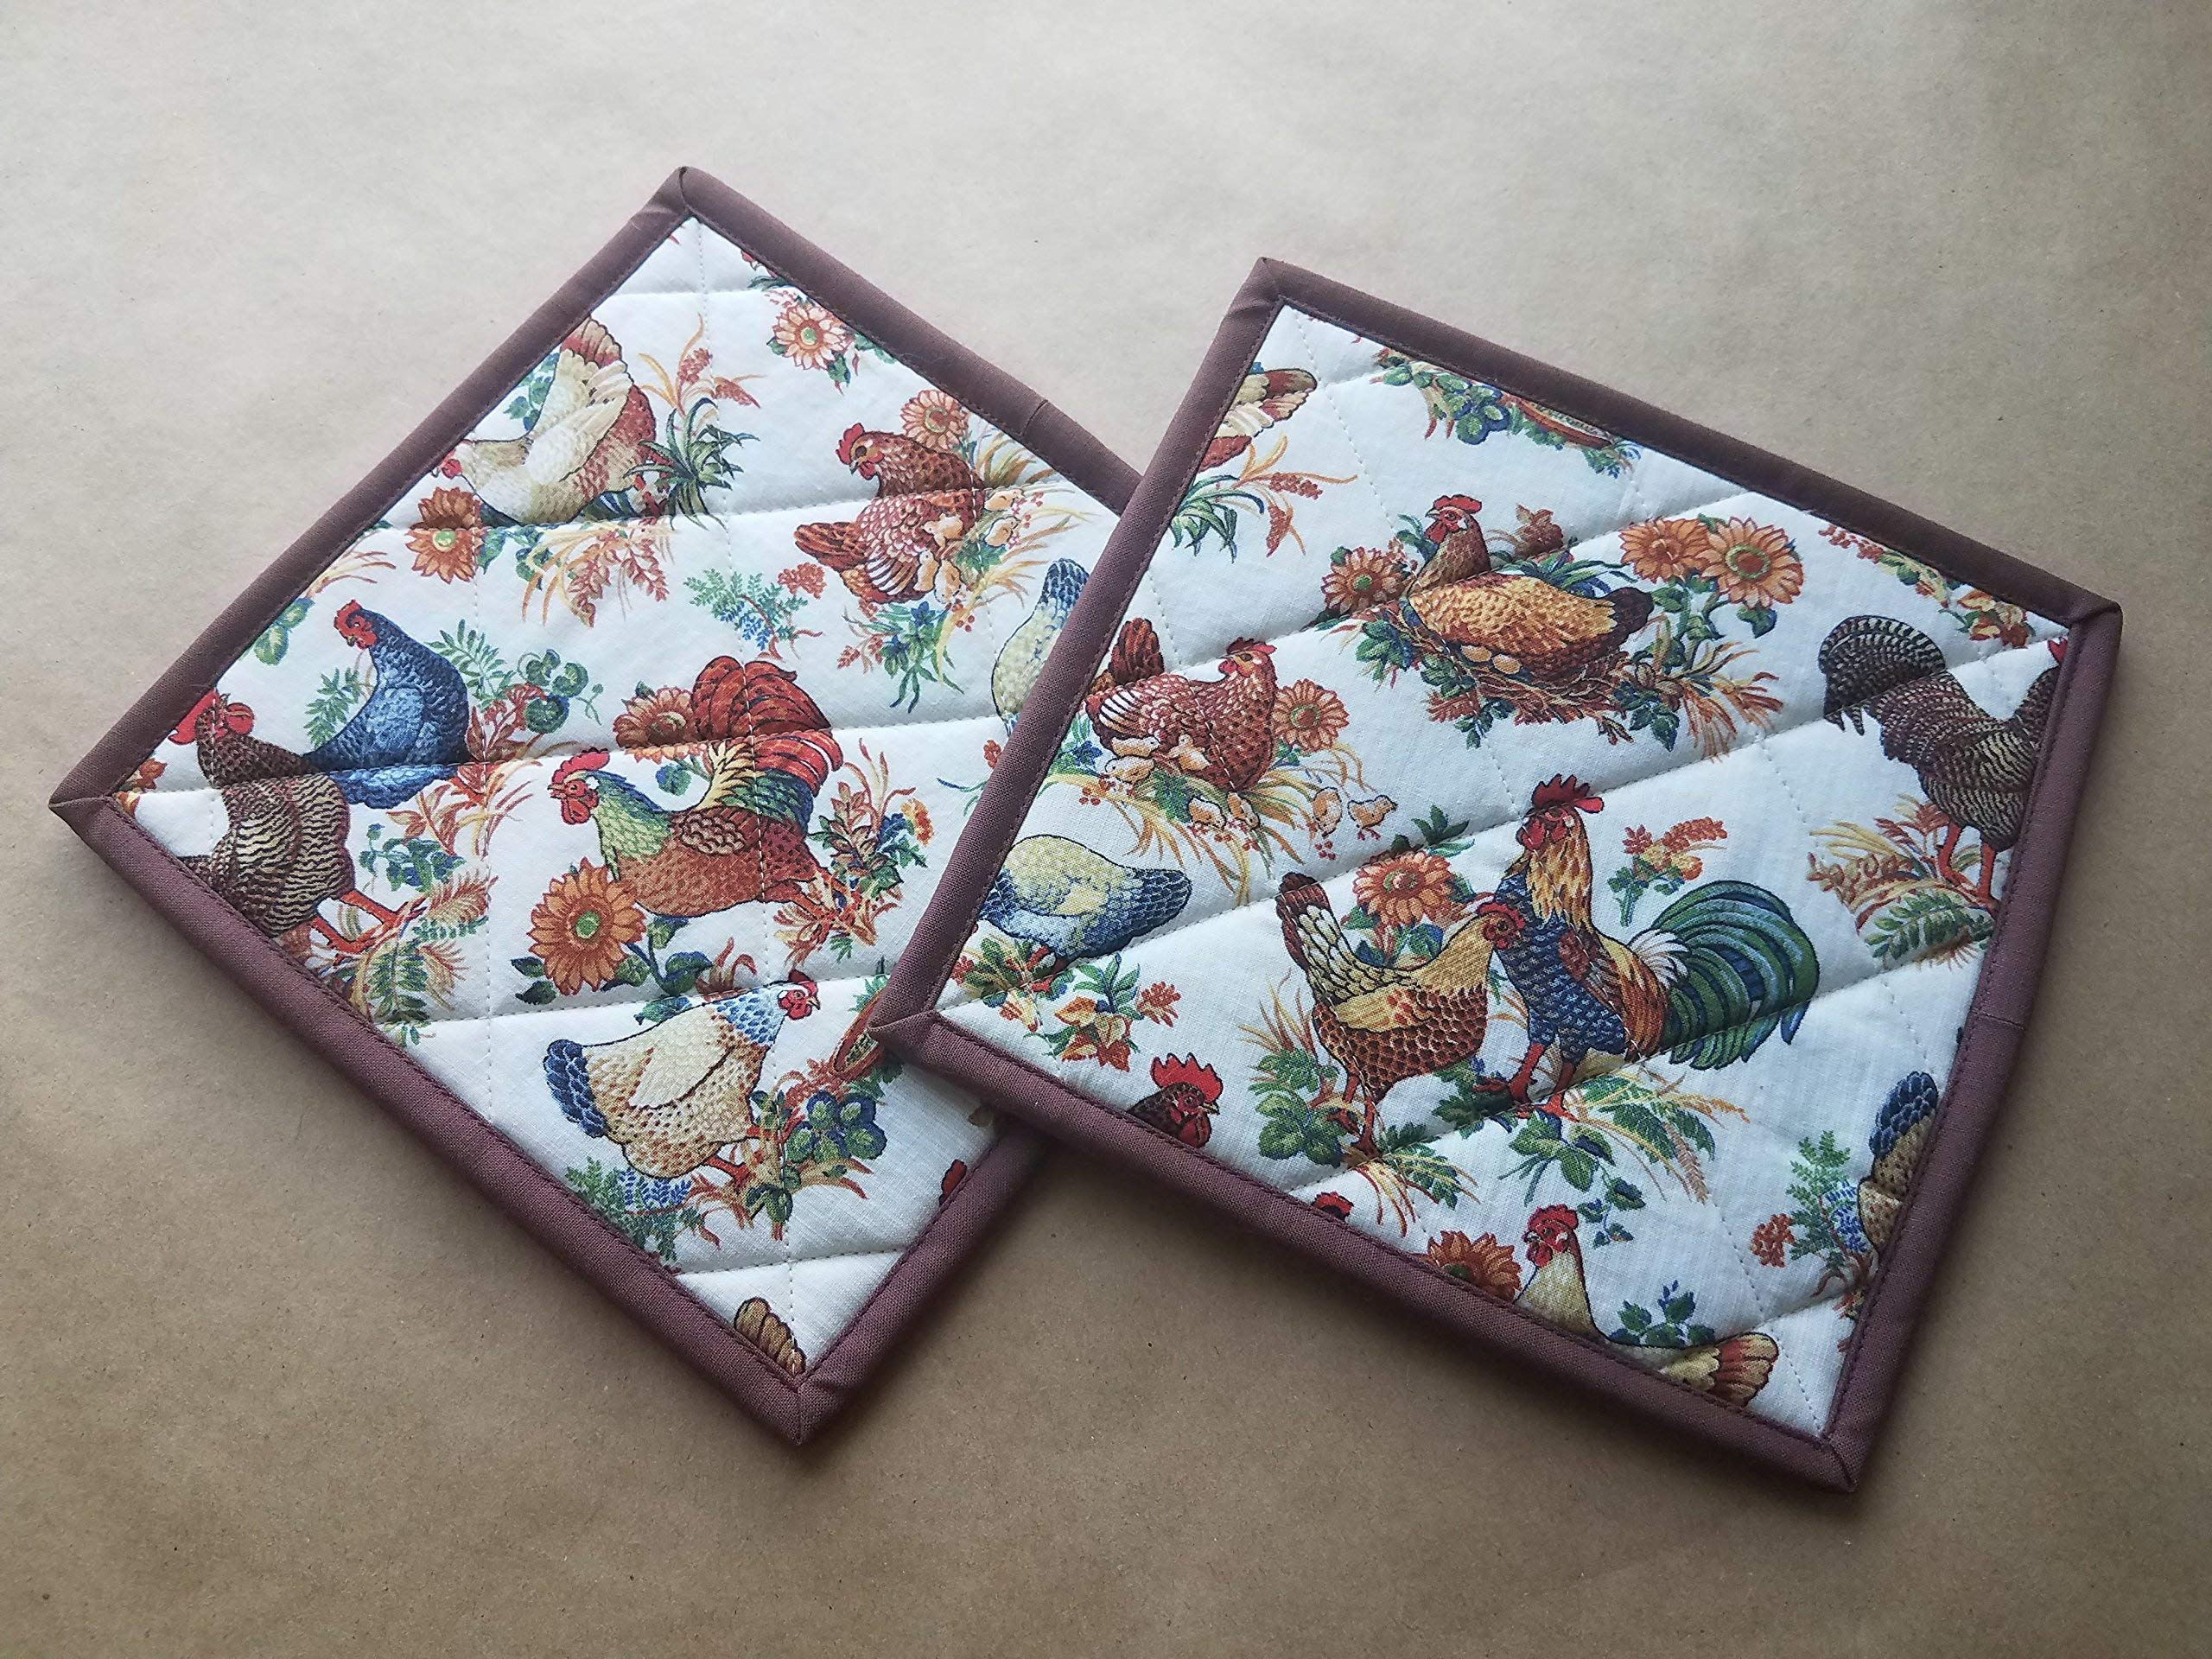 Chickens Quilted Potholders, Set of 2, Vintage Chicken, Rooster, Hen, Chick Insulated Hot Pads, Trivets, Chooks, Farmhouse, Rustic Country Kitchen Decor, Chicken Themed Kitchen Gifts